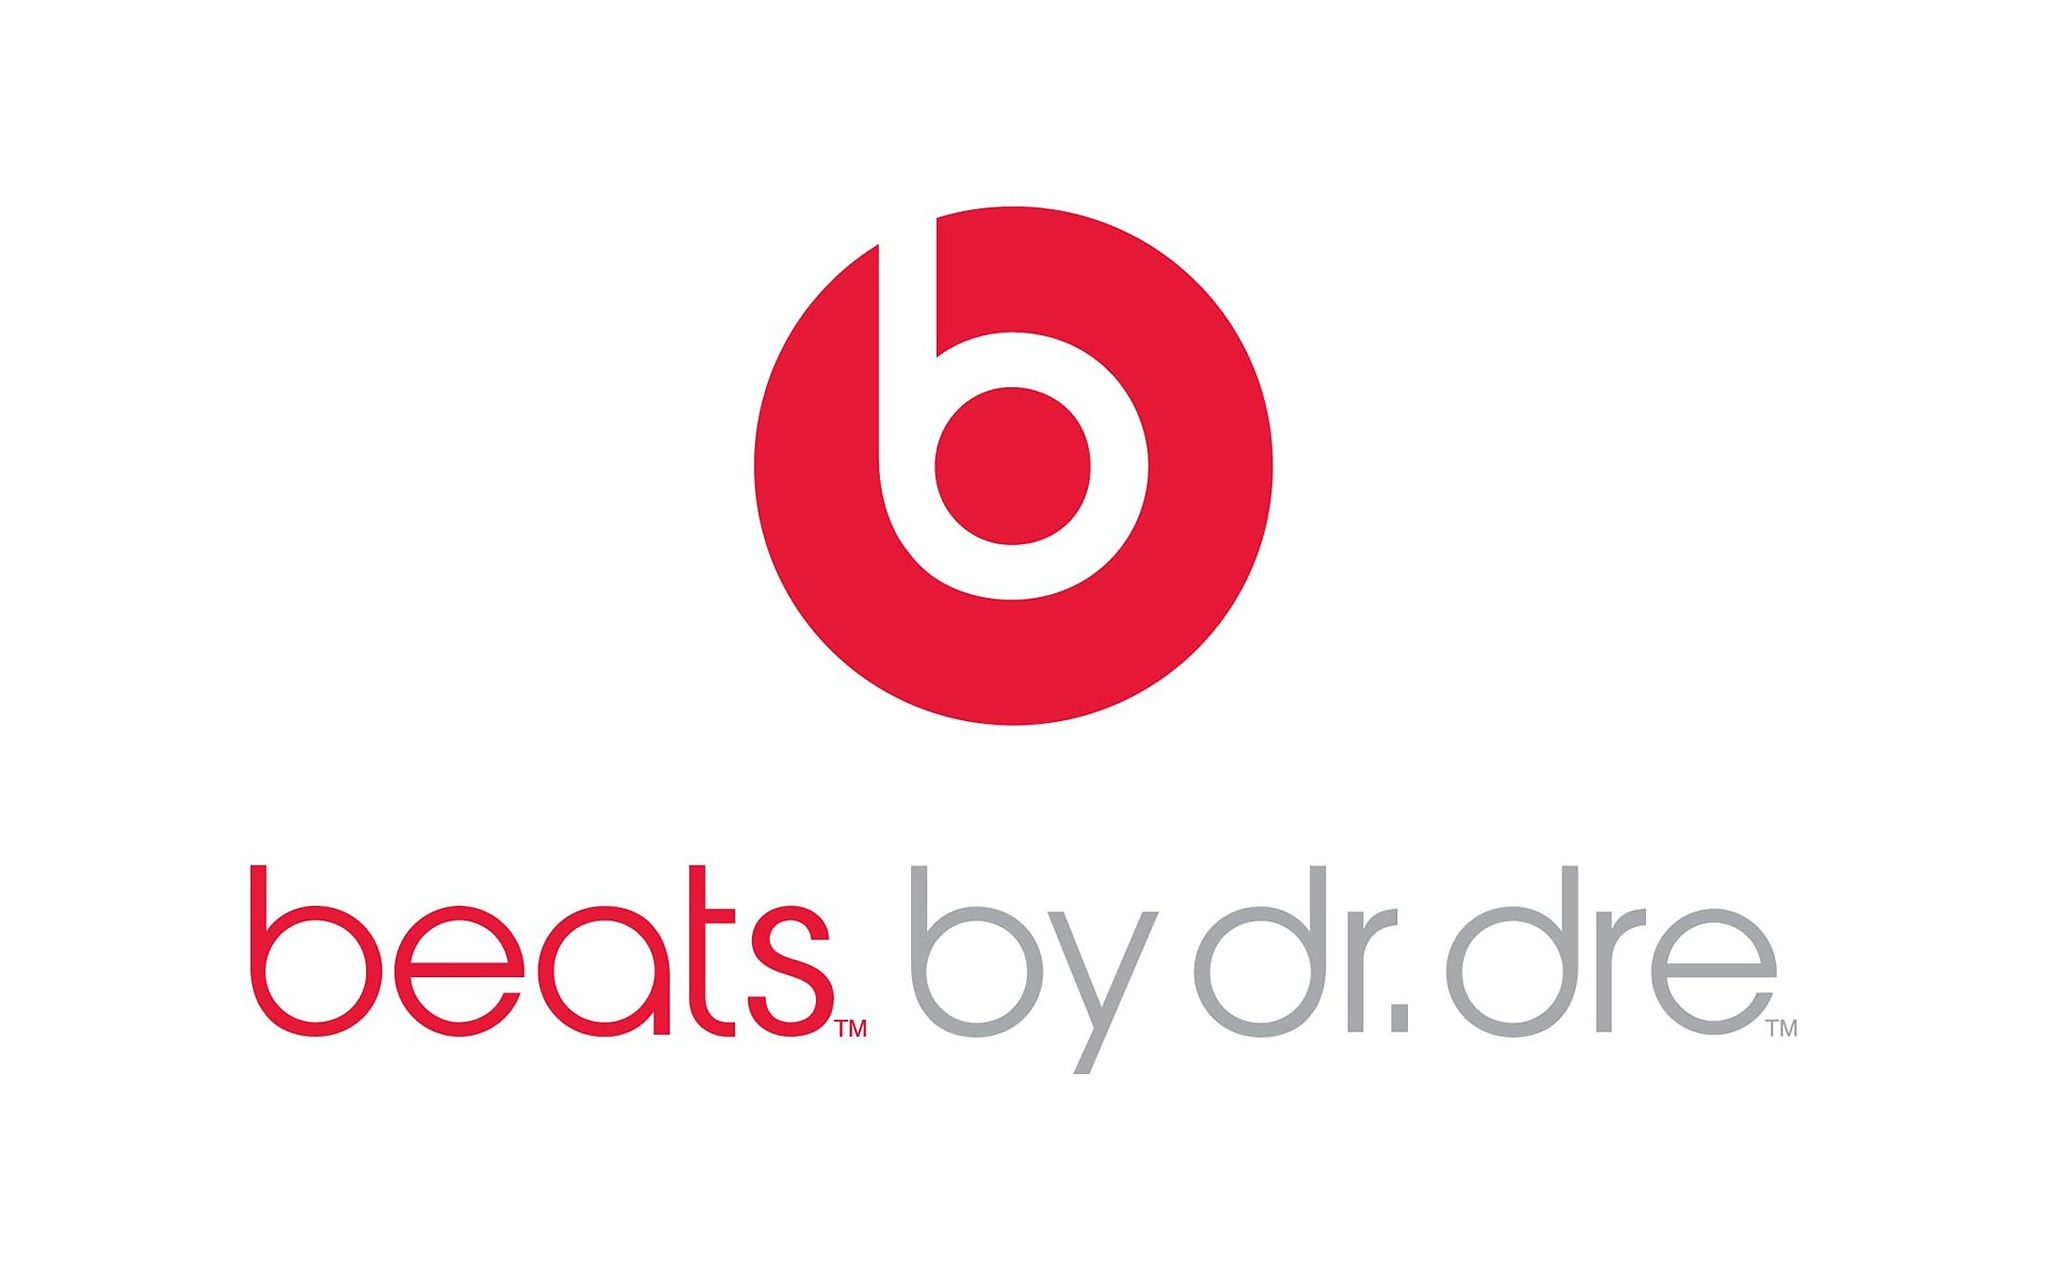 More Beats by Dre deals